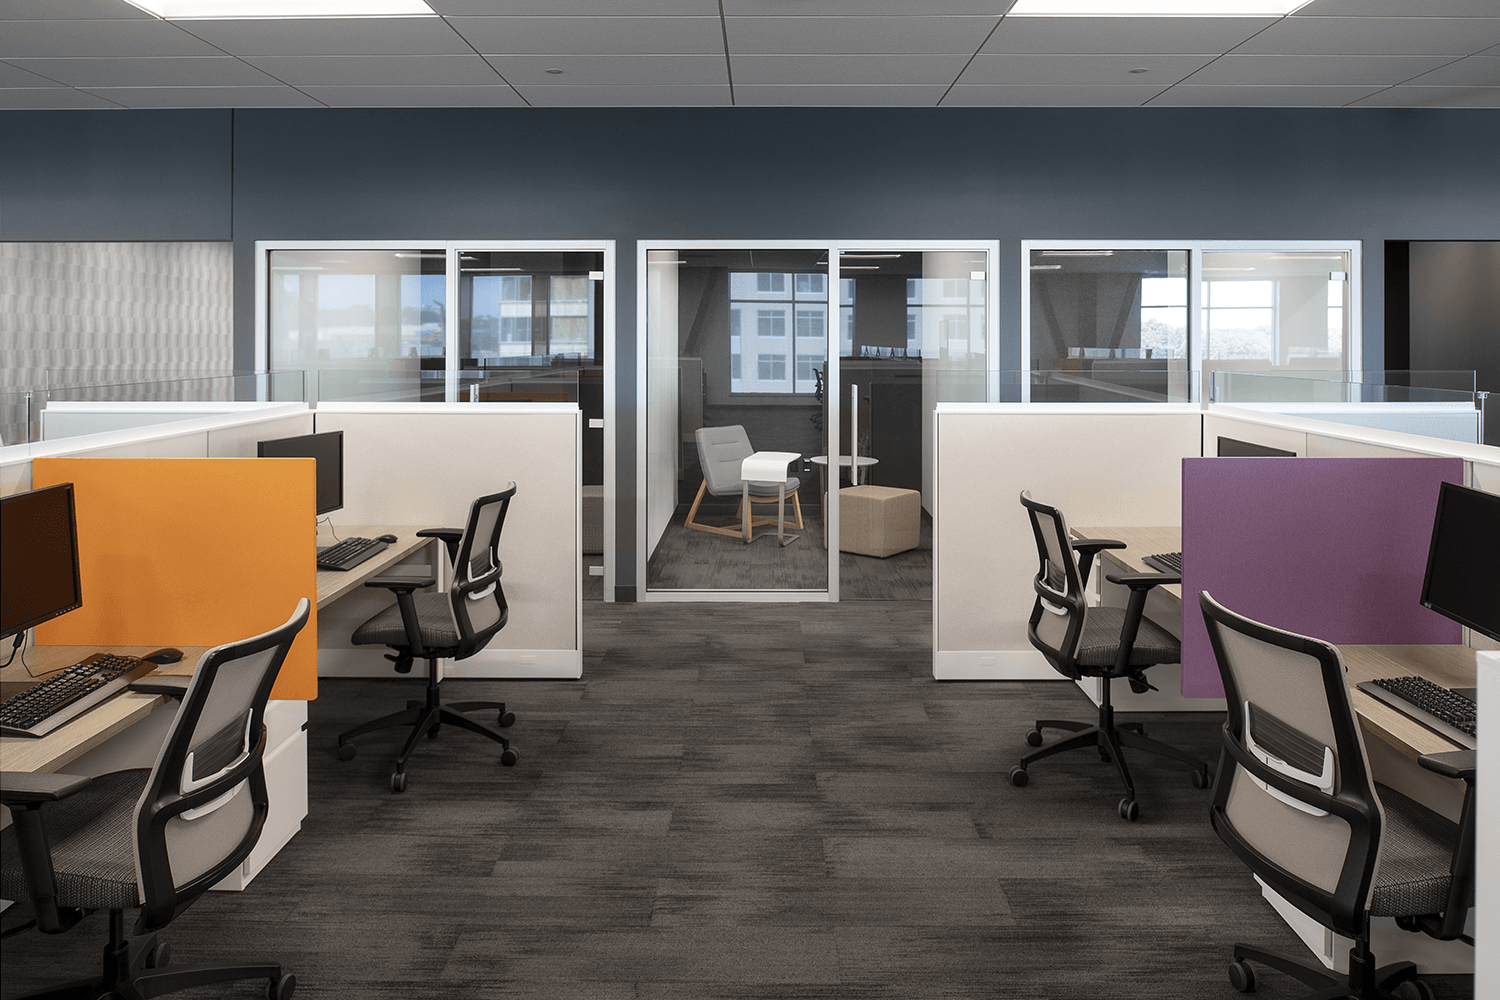 cubicles with orange and purple accent dividers